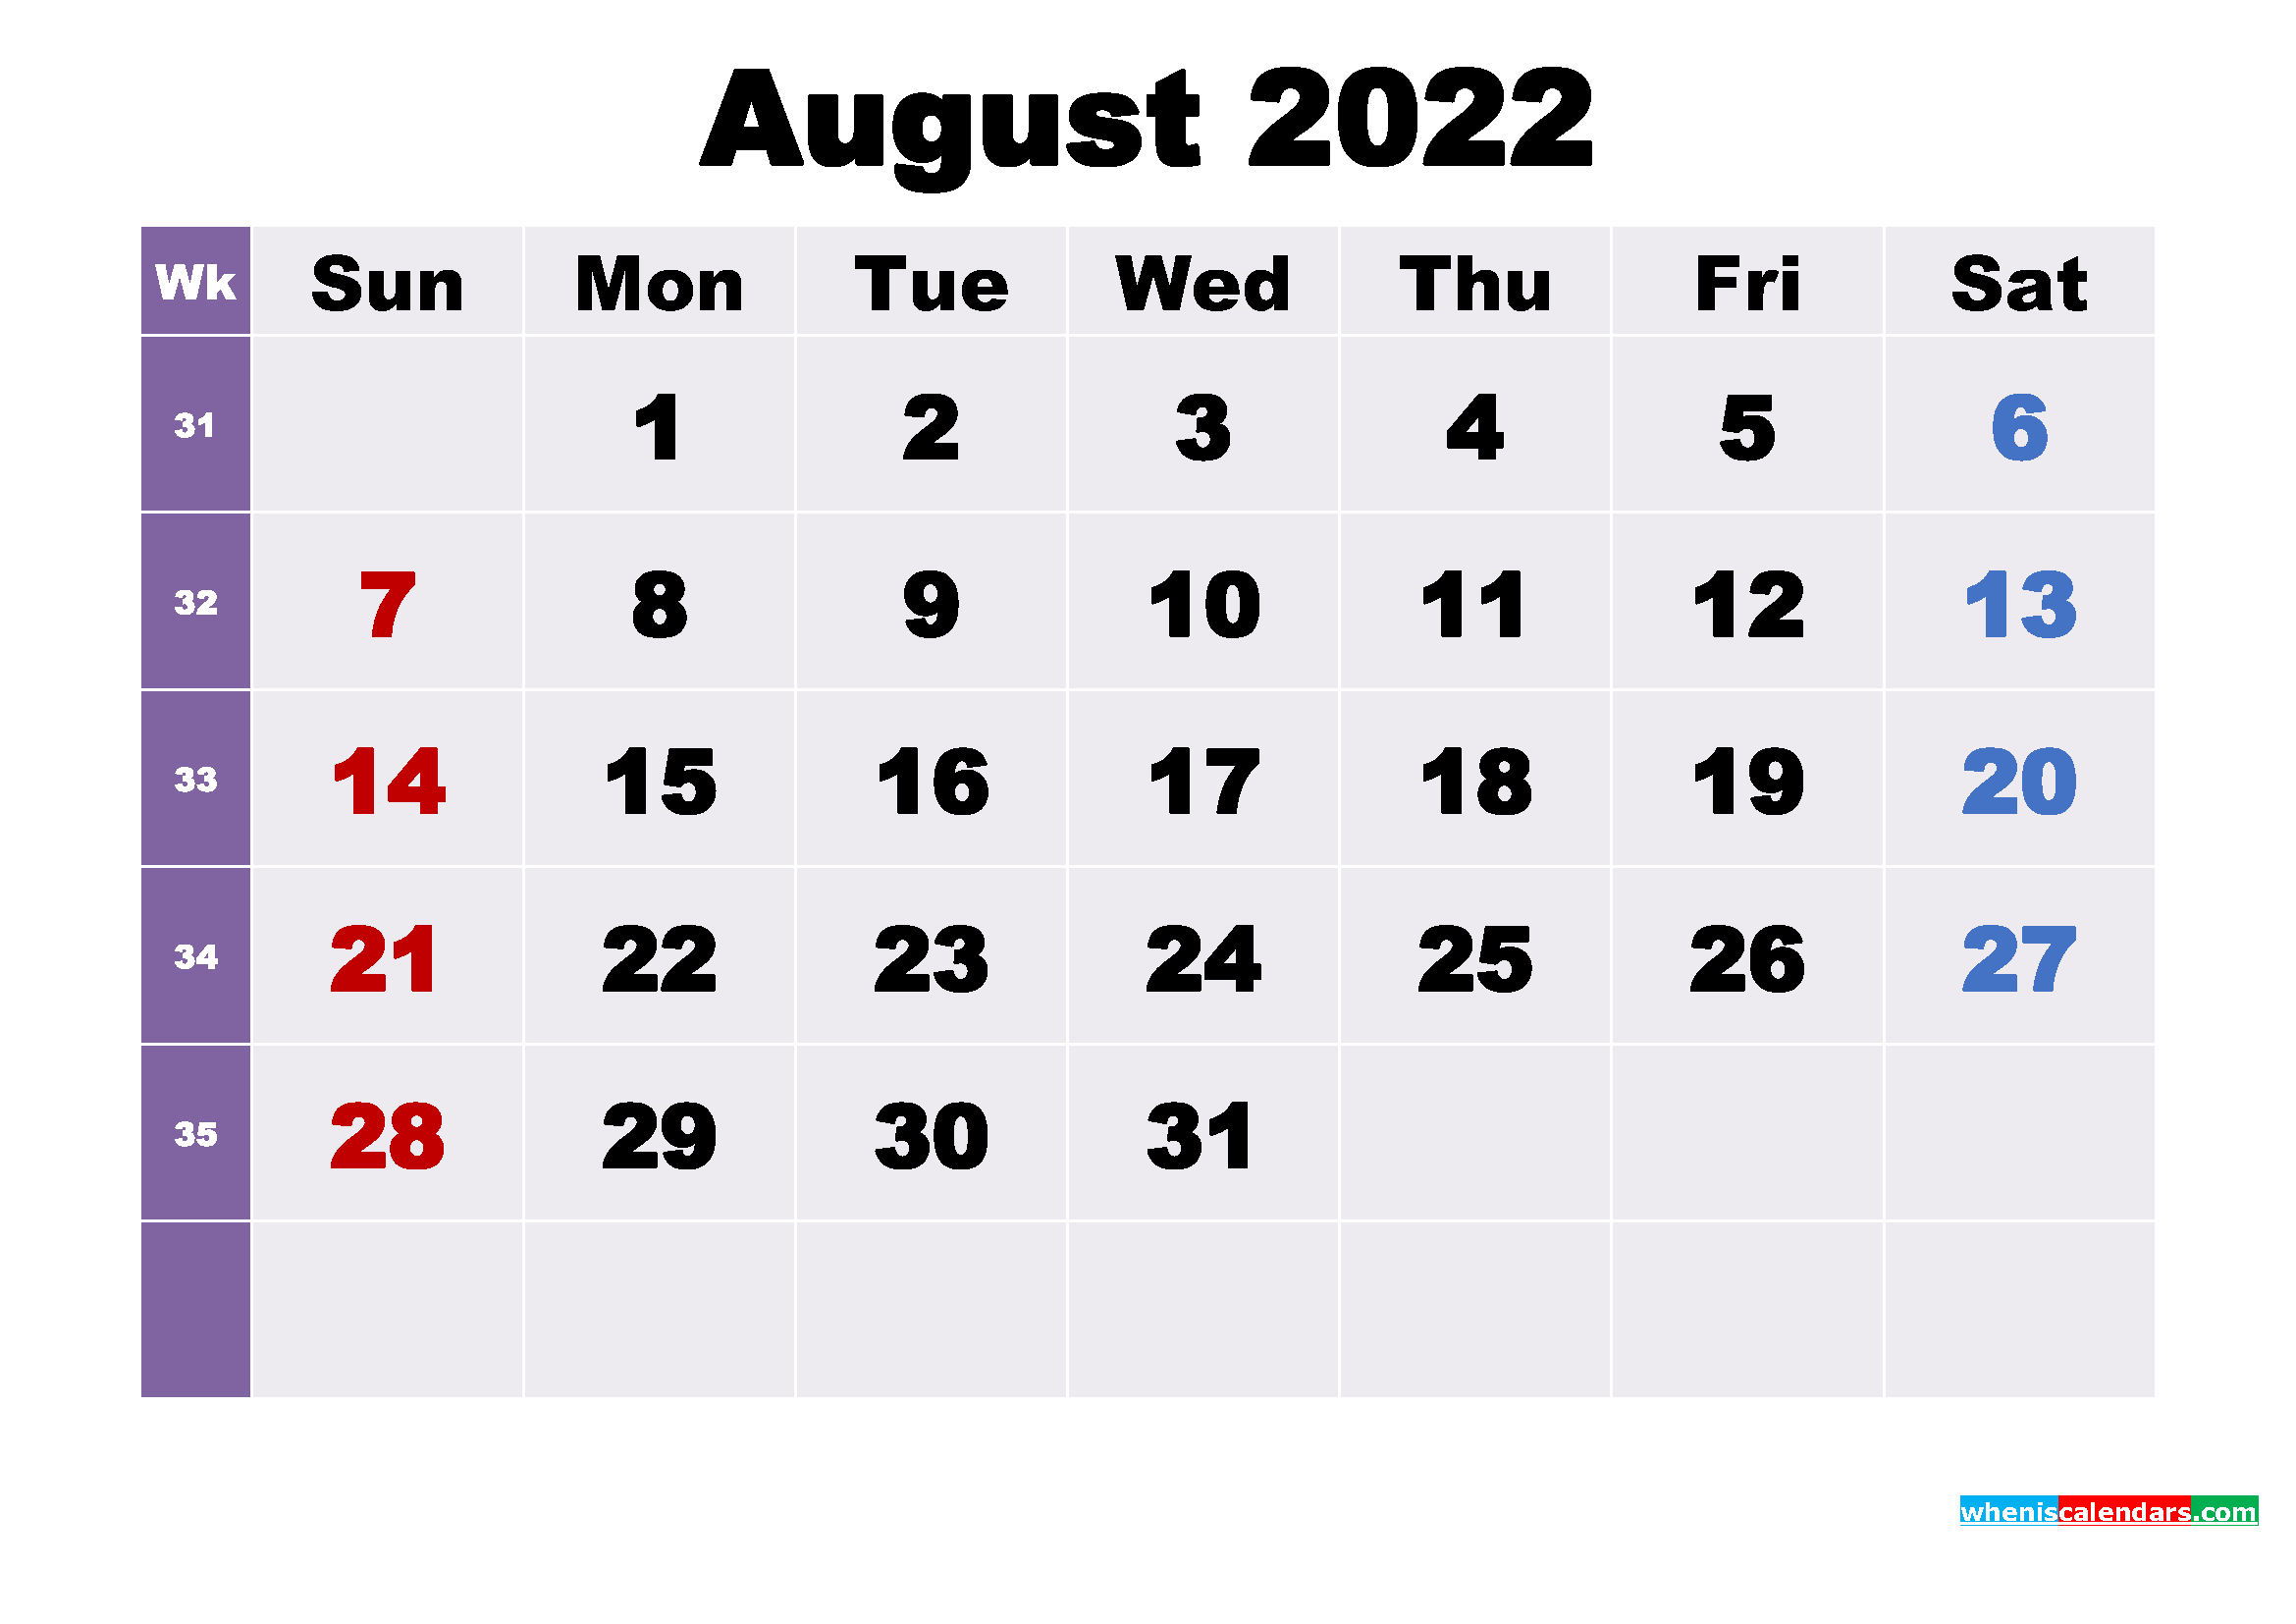 August 2022 Desktop Calendar Free Download